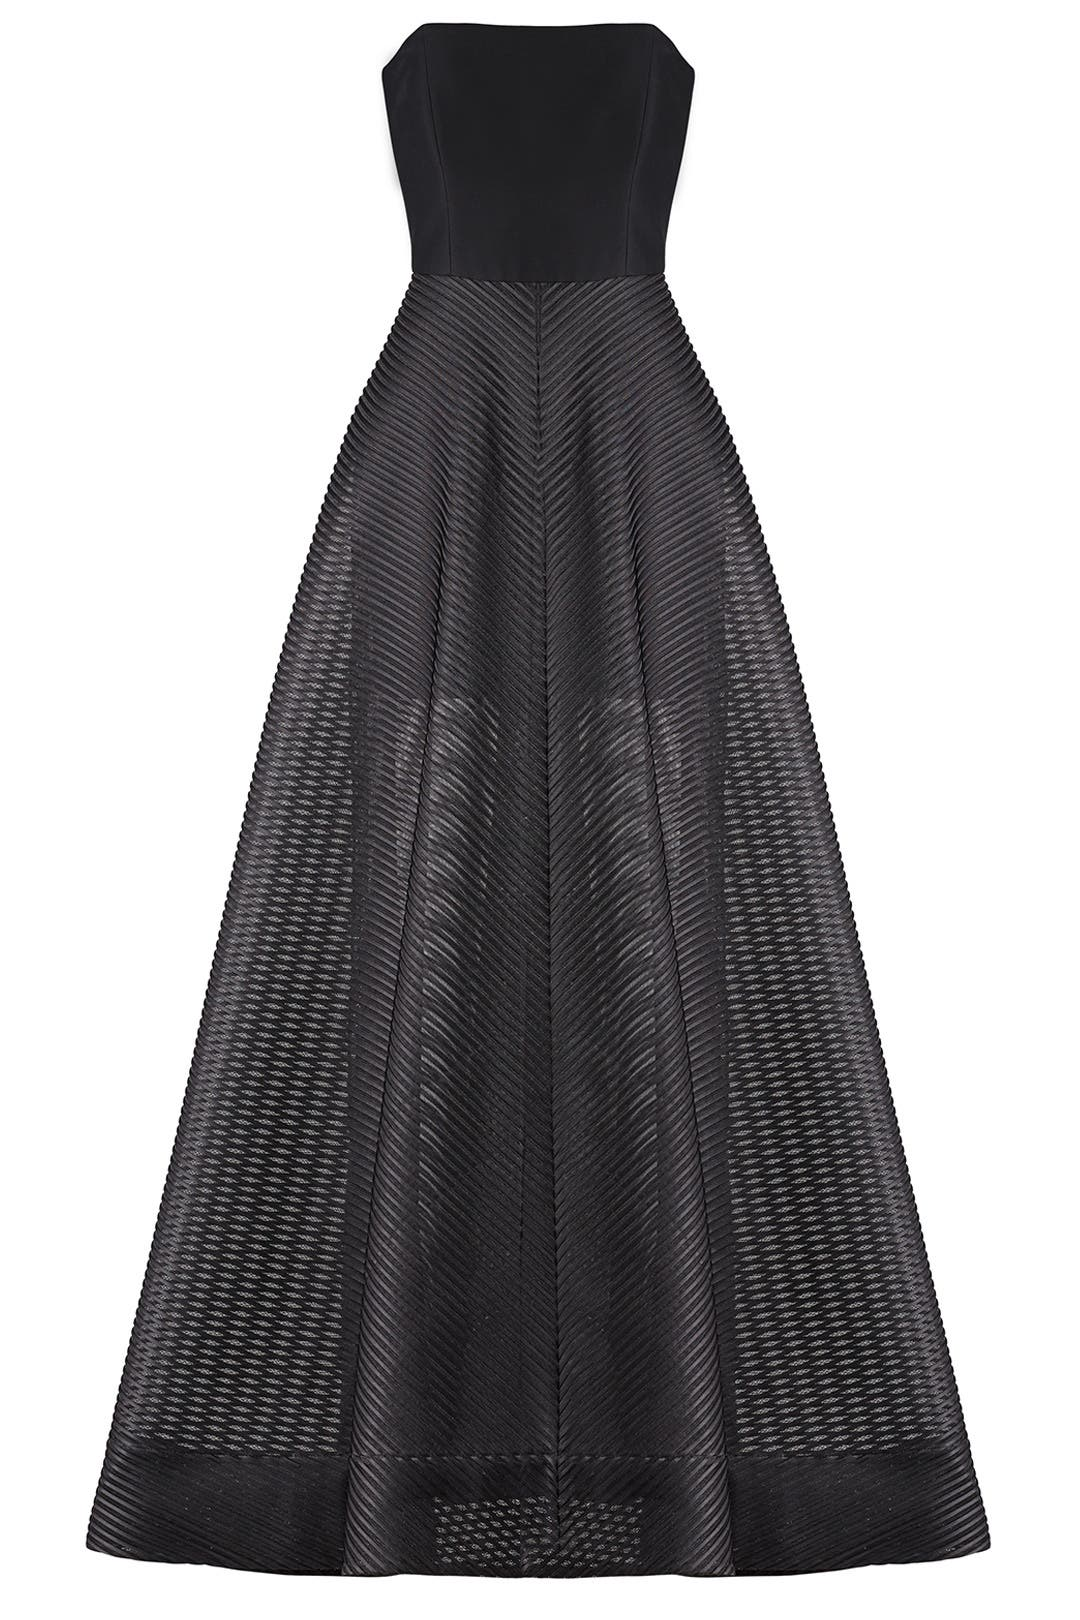 Stripe Mesh Gown by Halston Heritage for $110 | Rent the Runway